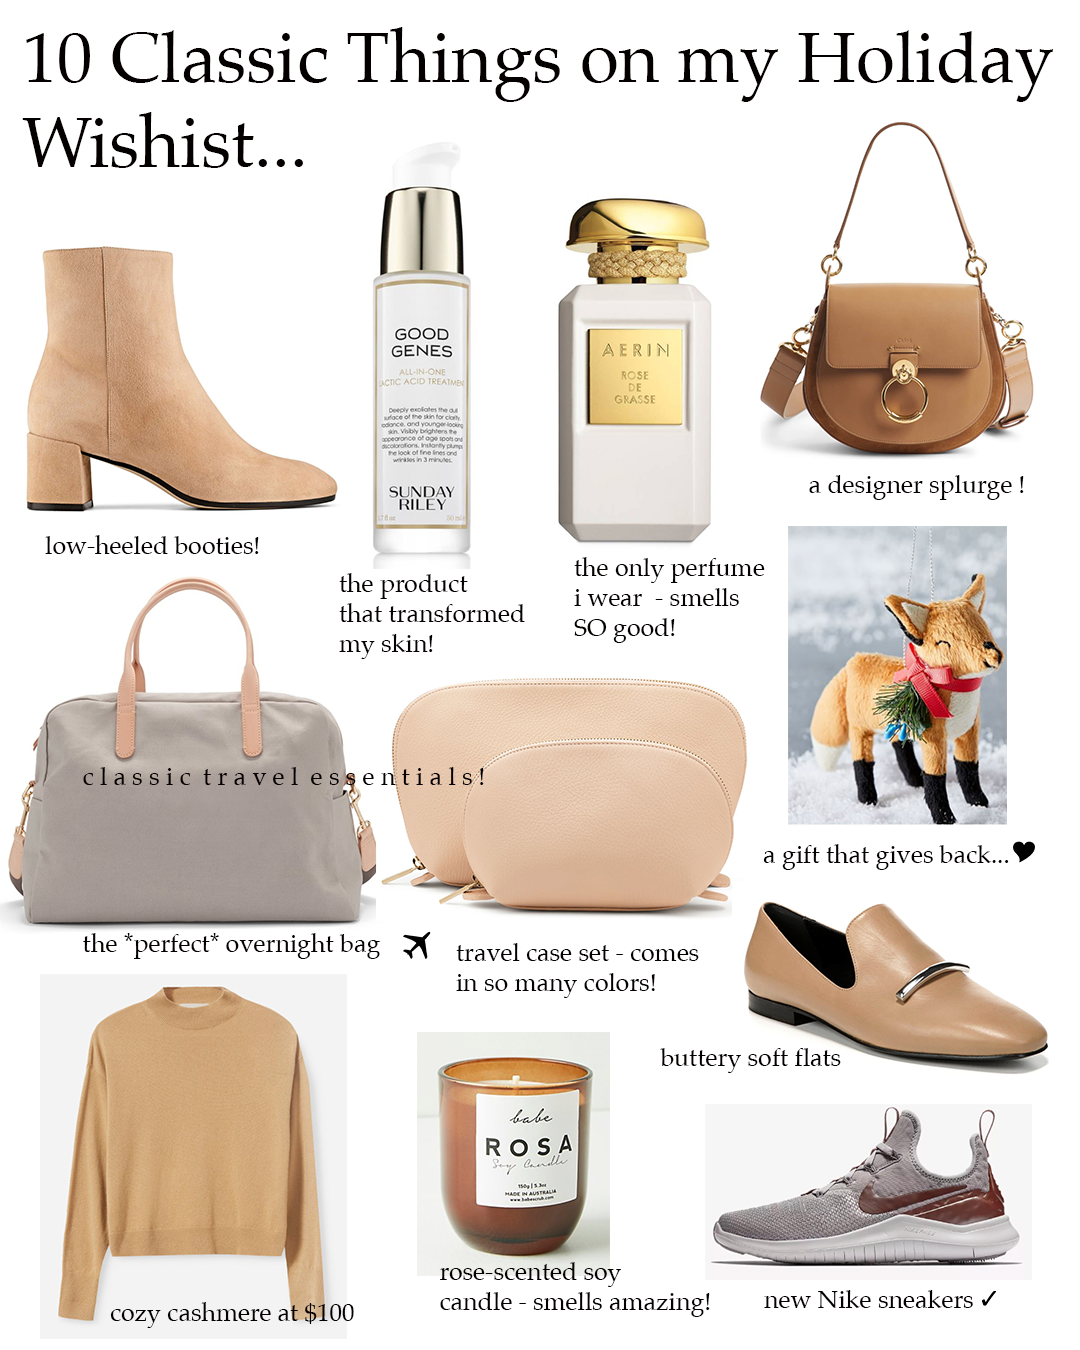 classic holiday gift ideas for her